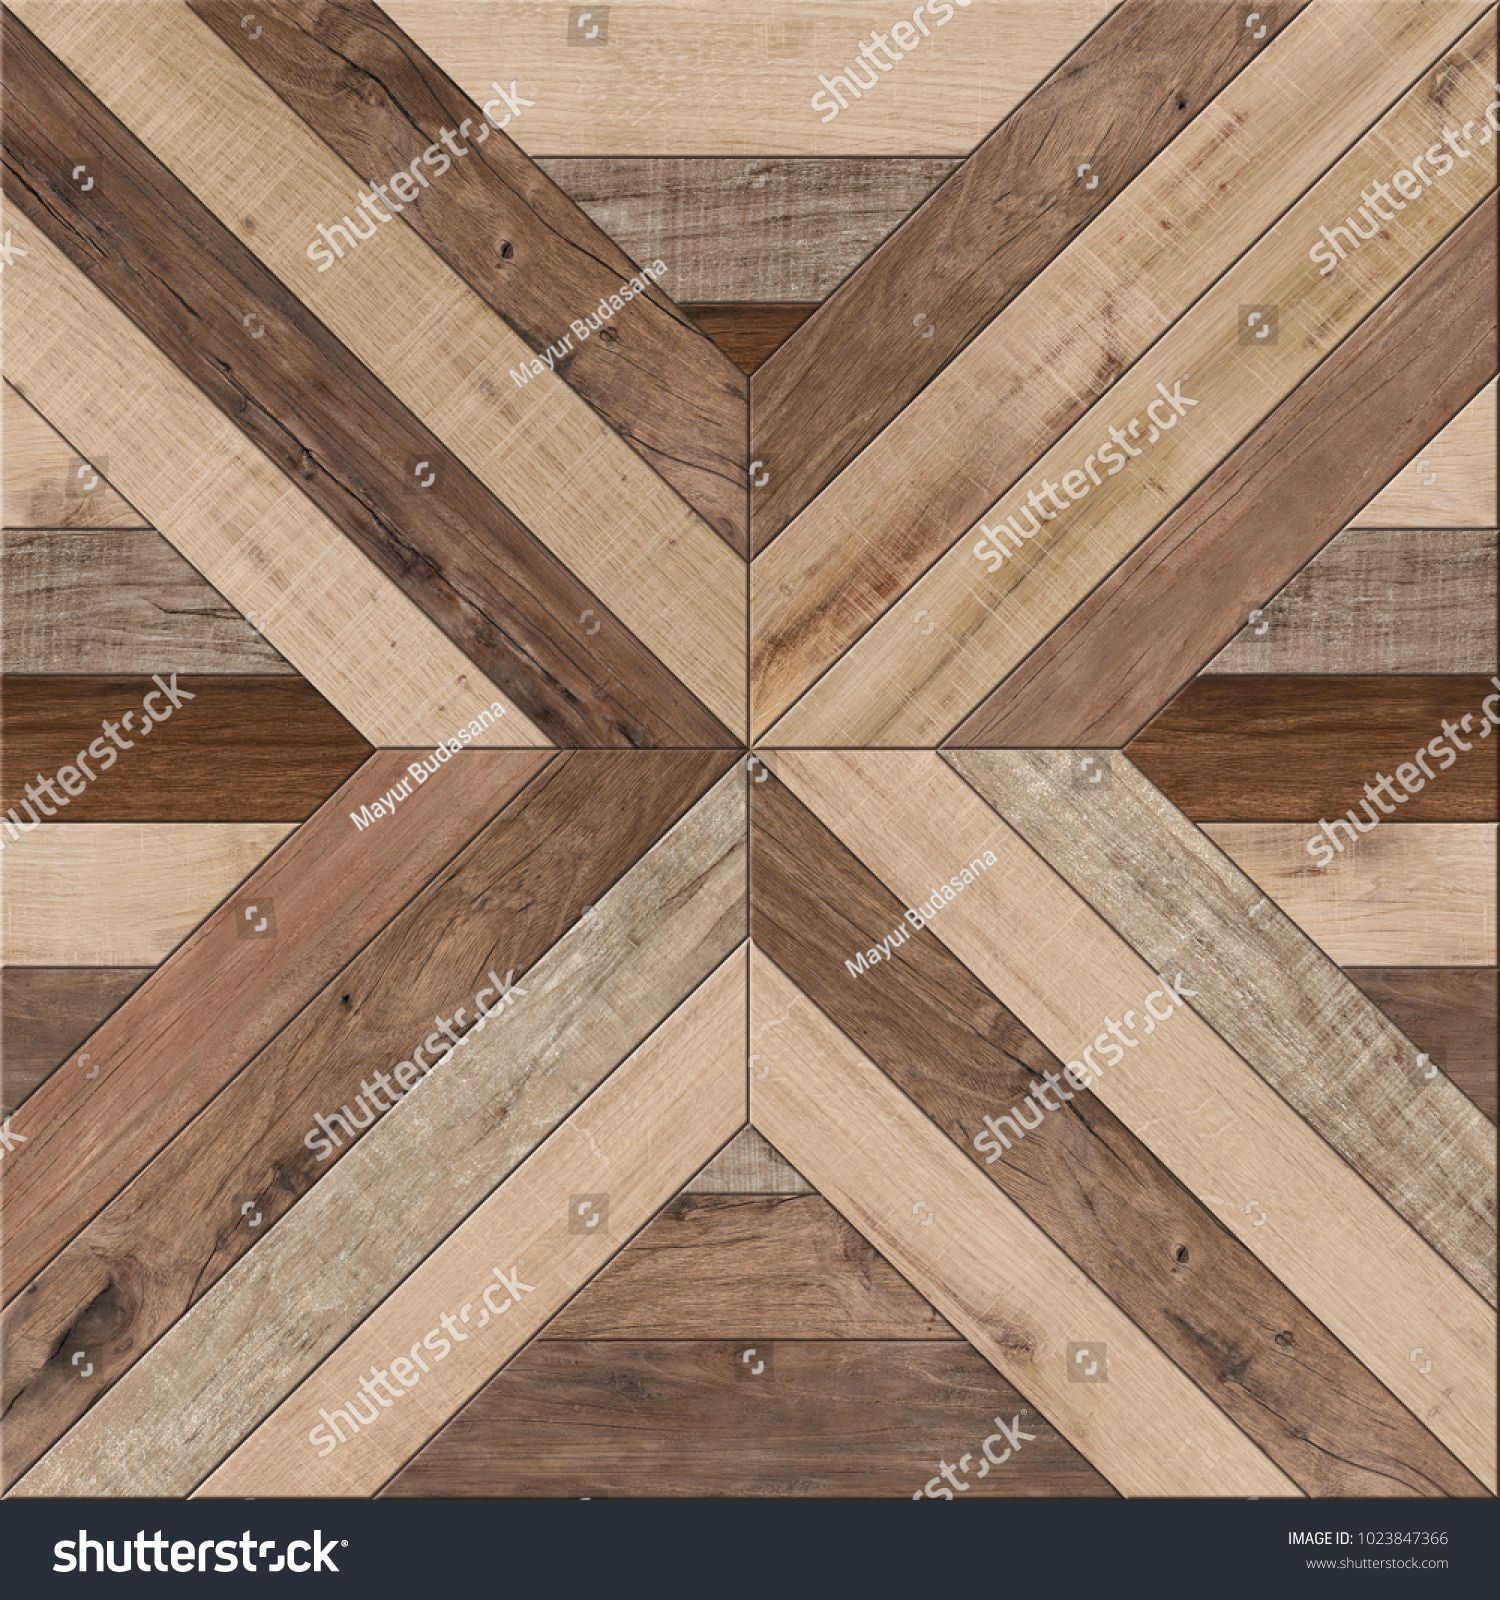 Wood texture background, X shaped, seamless pattern, Geometric wooded tile background#shaped#Wood#texture #woodtexturebackground Wood texture background, X shaped, seamless pattern, Geometric wooded tile background#shaped#Wood#texture #woodtexturebackground